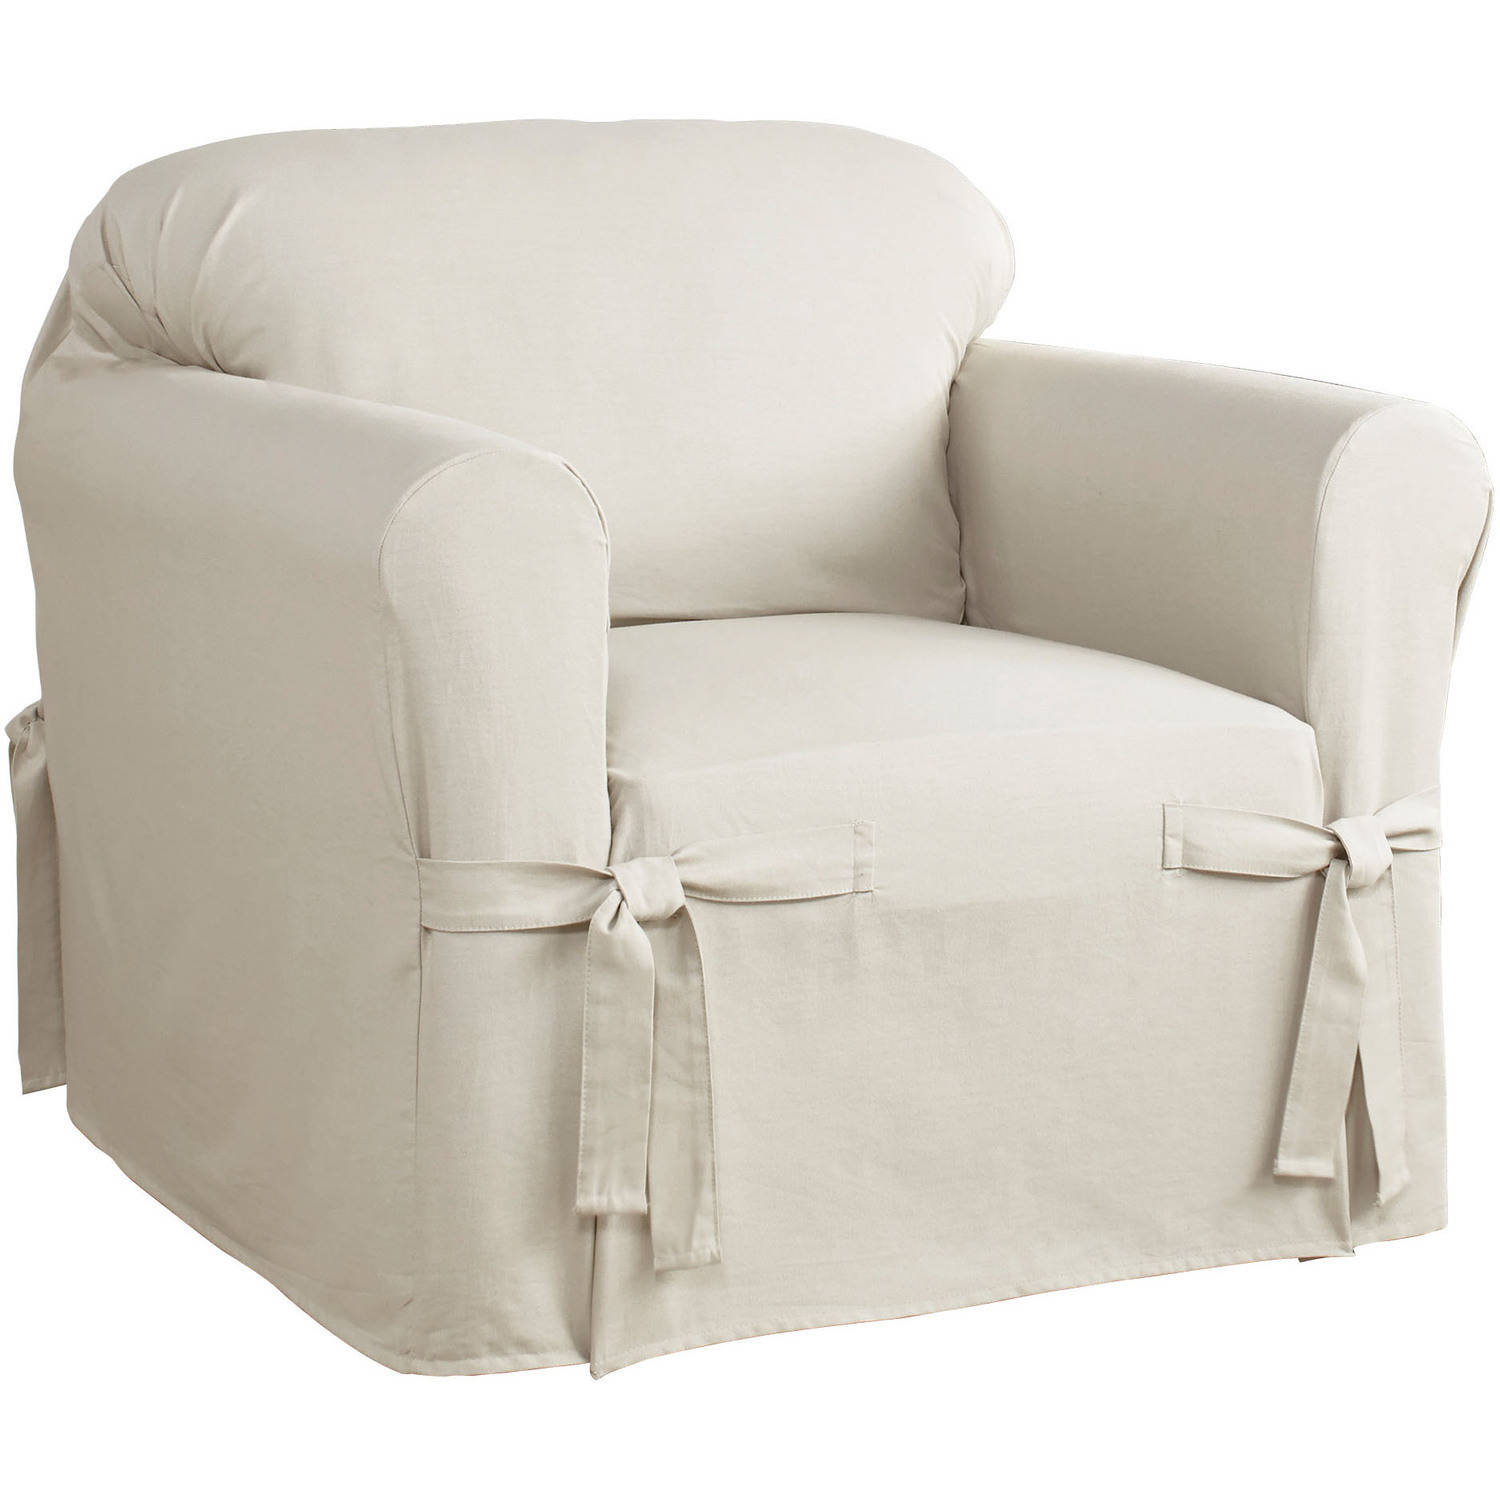 Serta Relaxed Fit Cotton Duck Furniture Slipcover, Chair 1 Piece Box Cushion